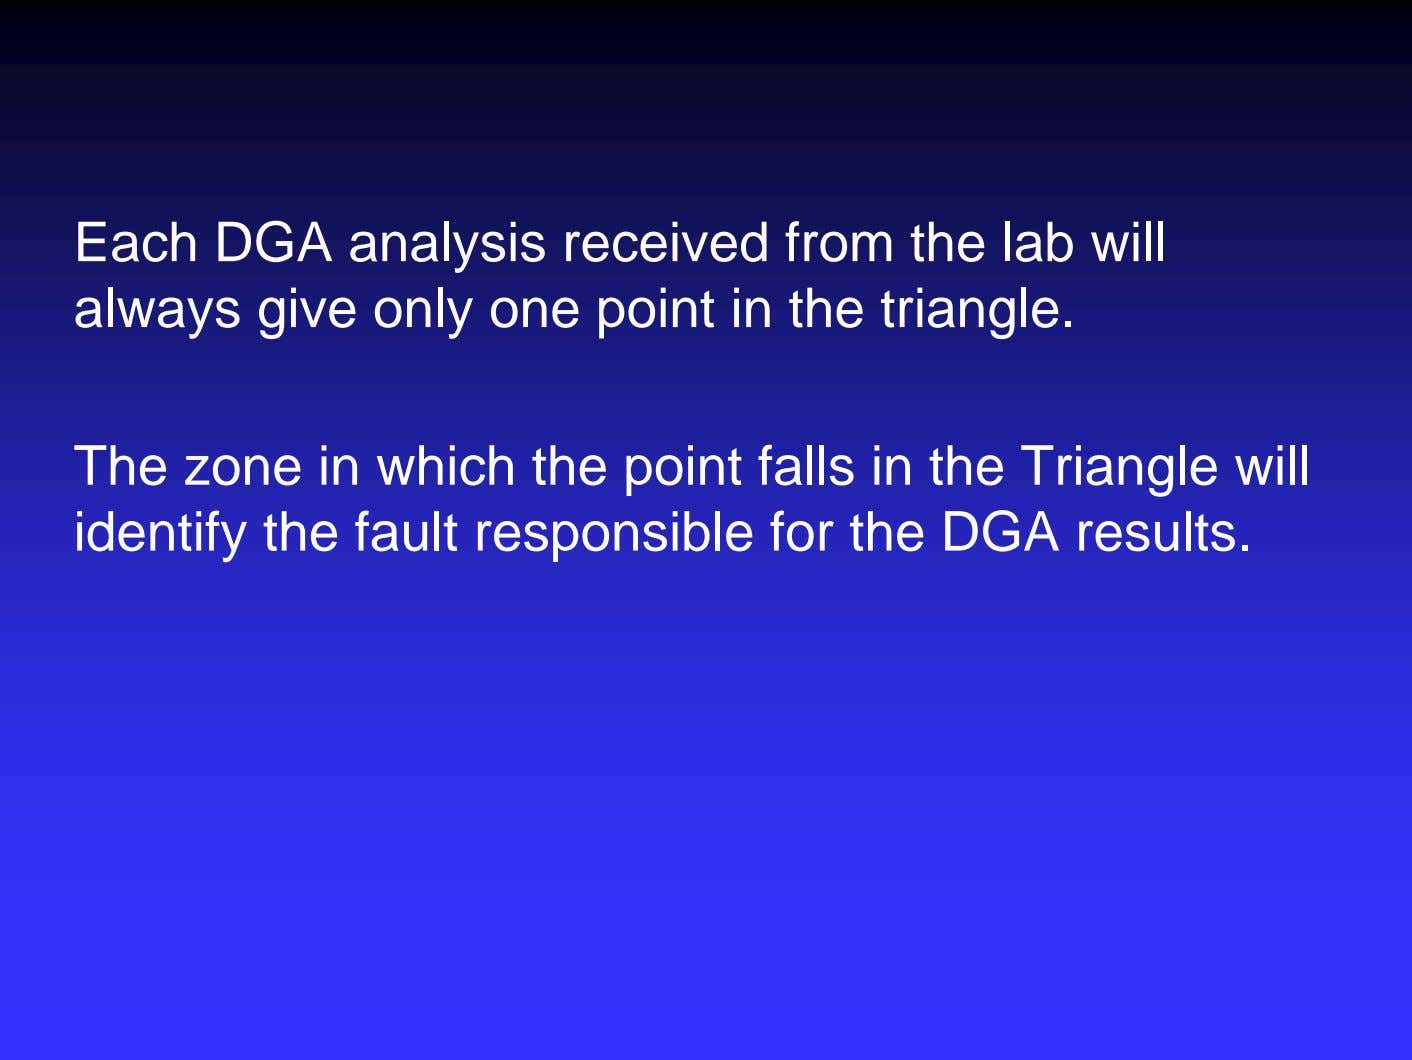 Each DGA analysis received from the lab will always give only one point in the